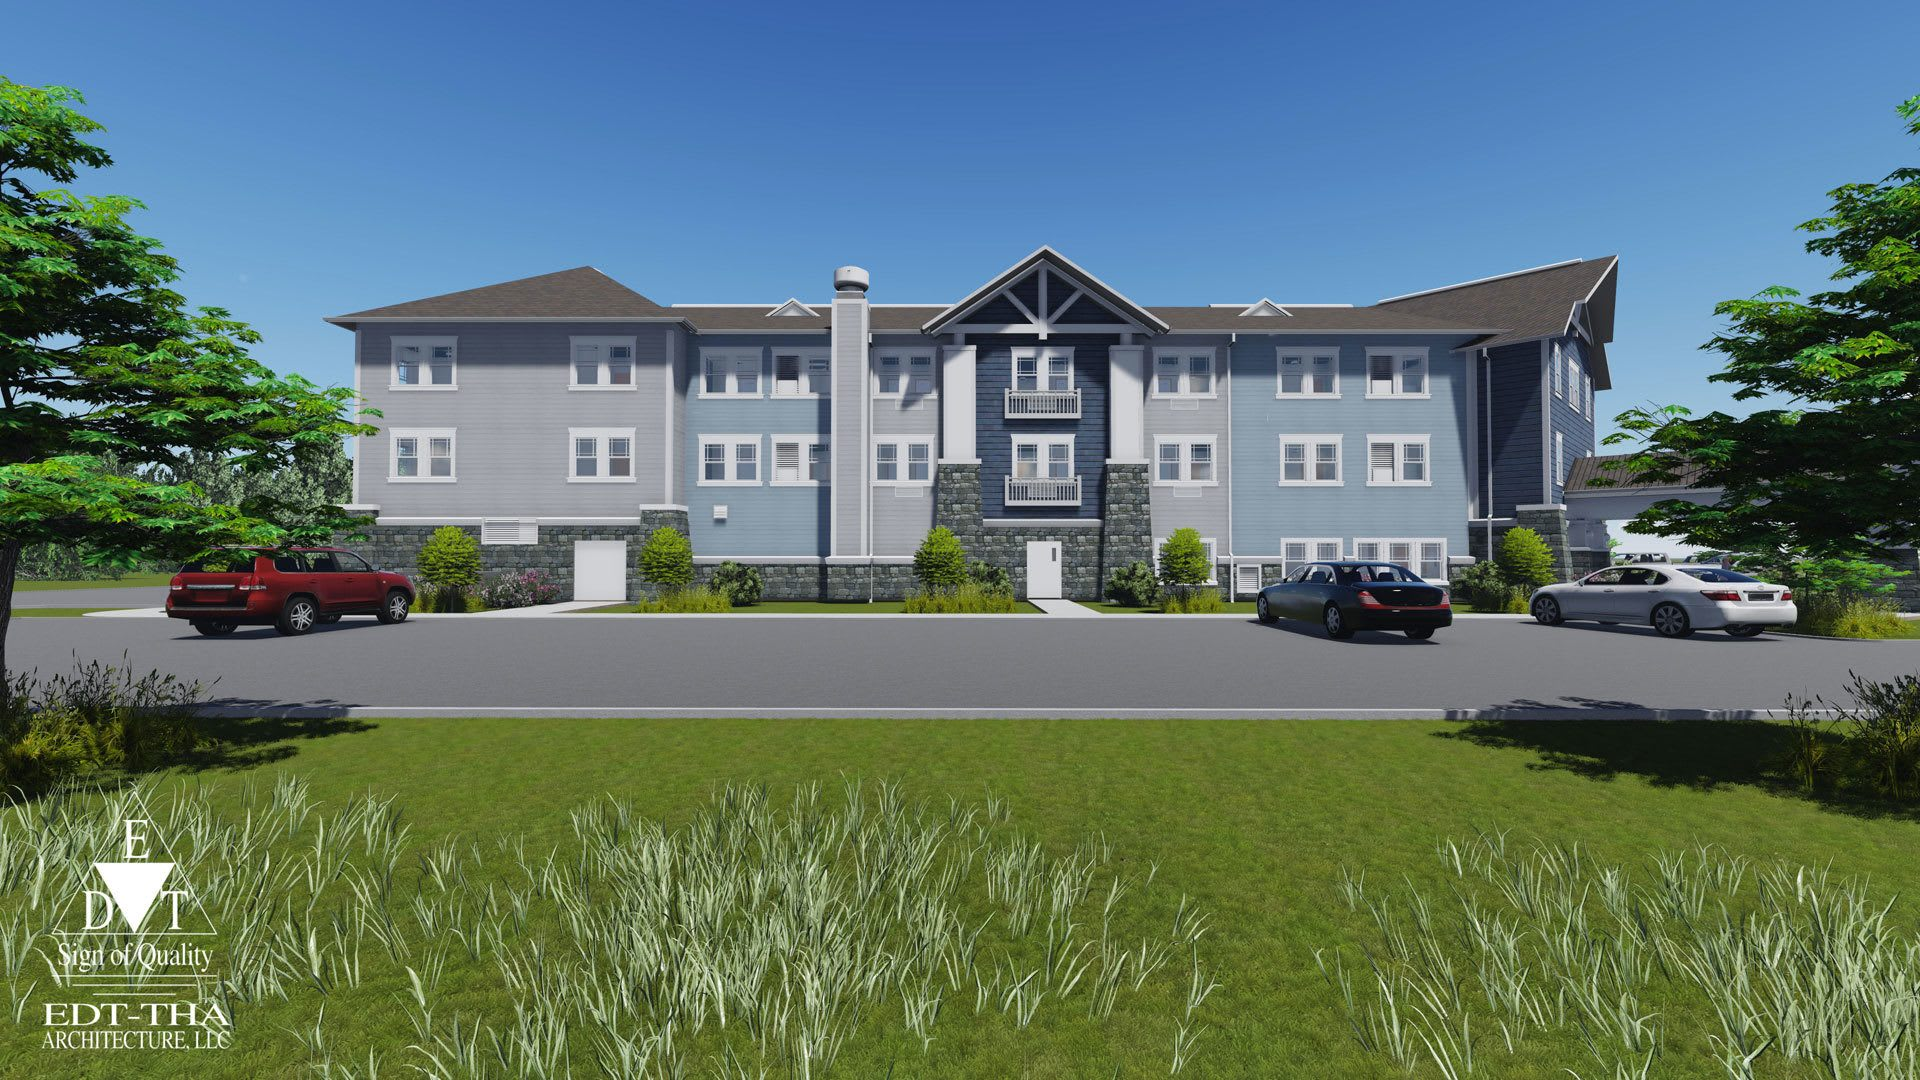 Exterior Rendering The Phoenix at James Creek